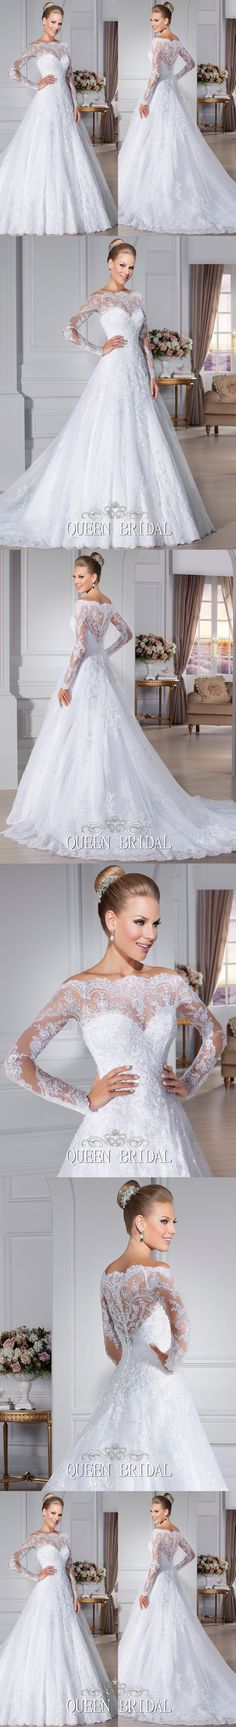 White long sleeve lace wedding dresses 2015 vintage a-line bridal dress wedding…